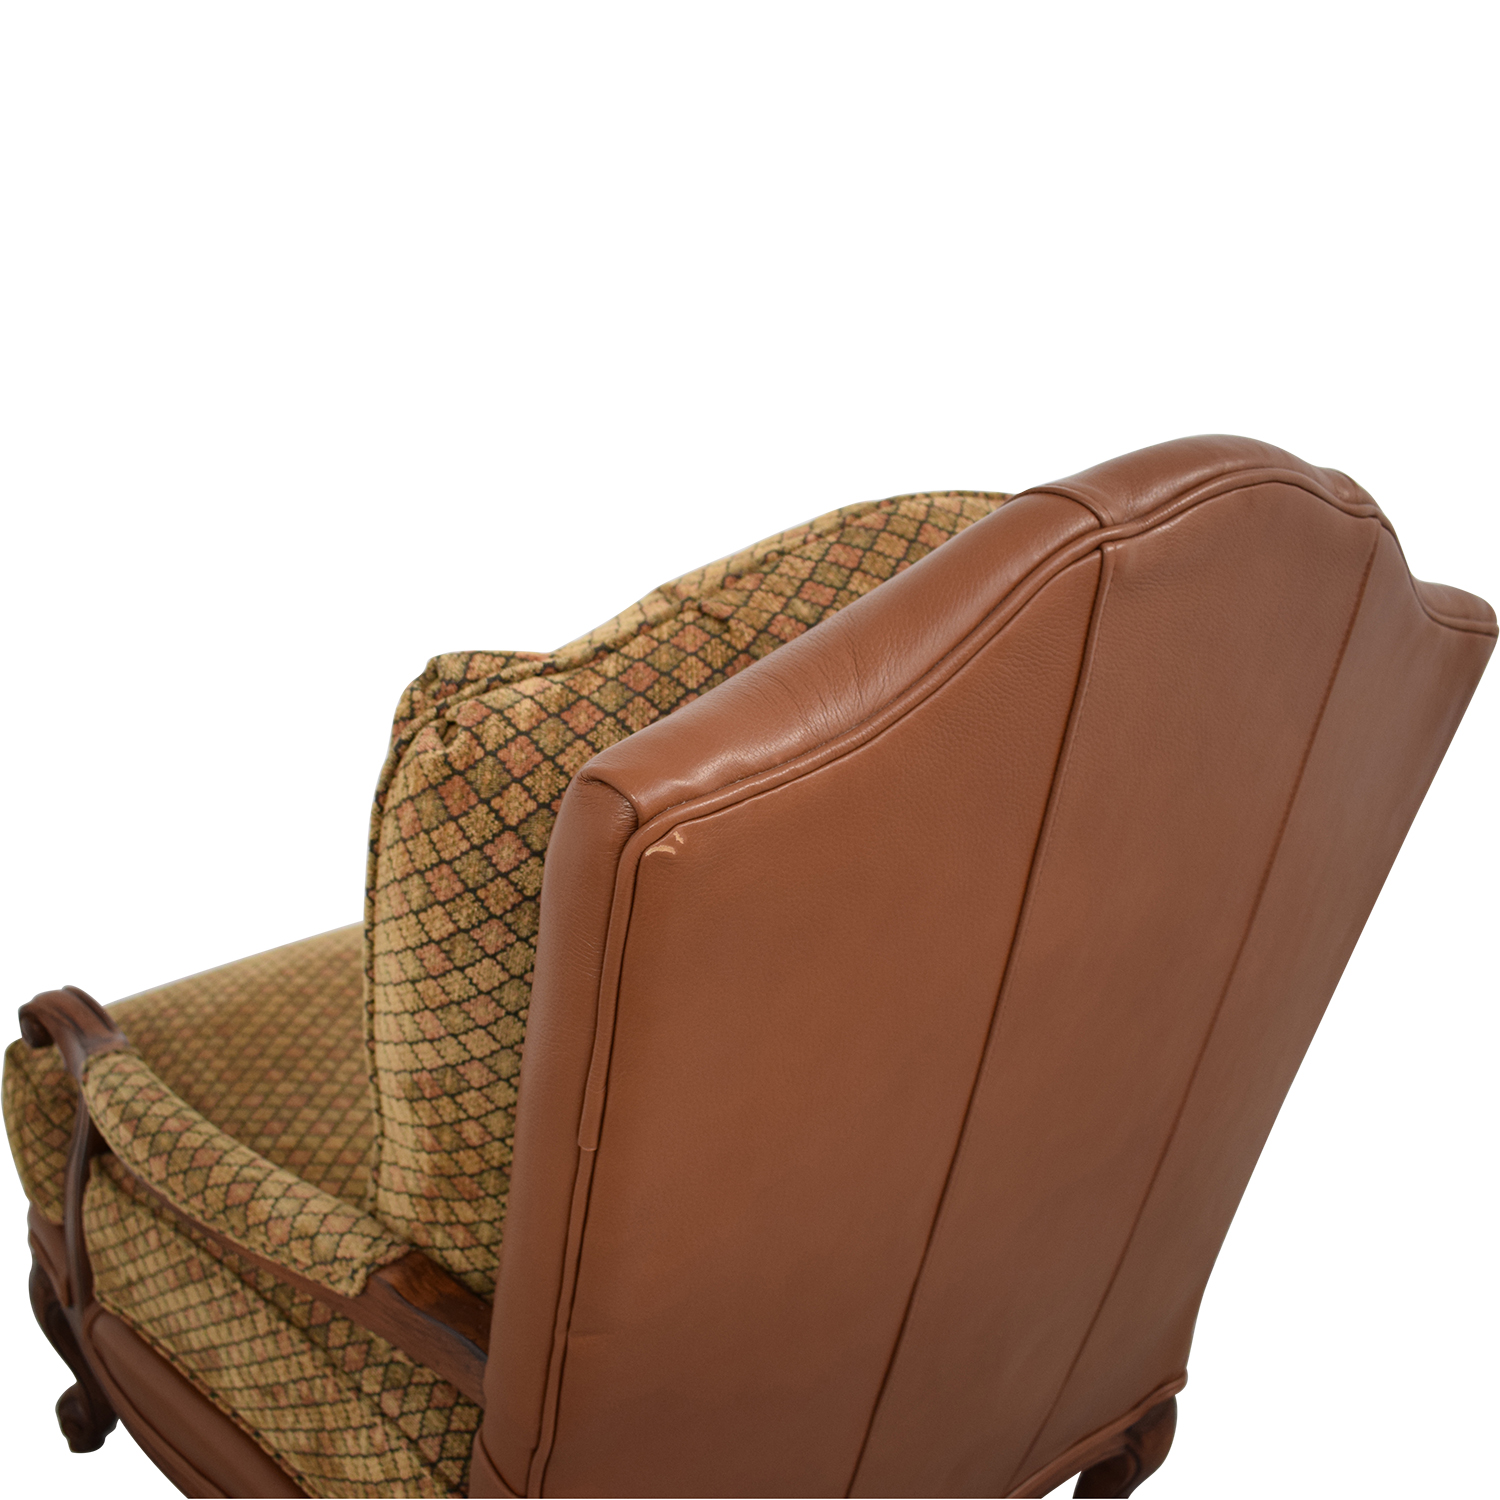 Ethan Allen Ethan Allen Upholstered Accent Chair price